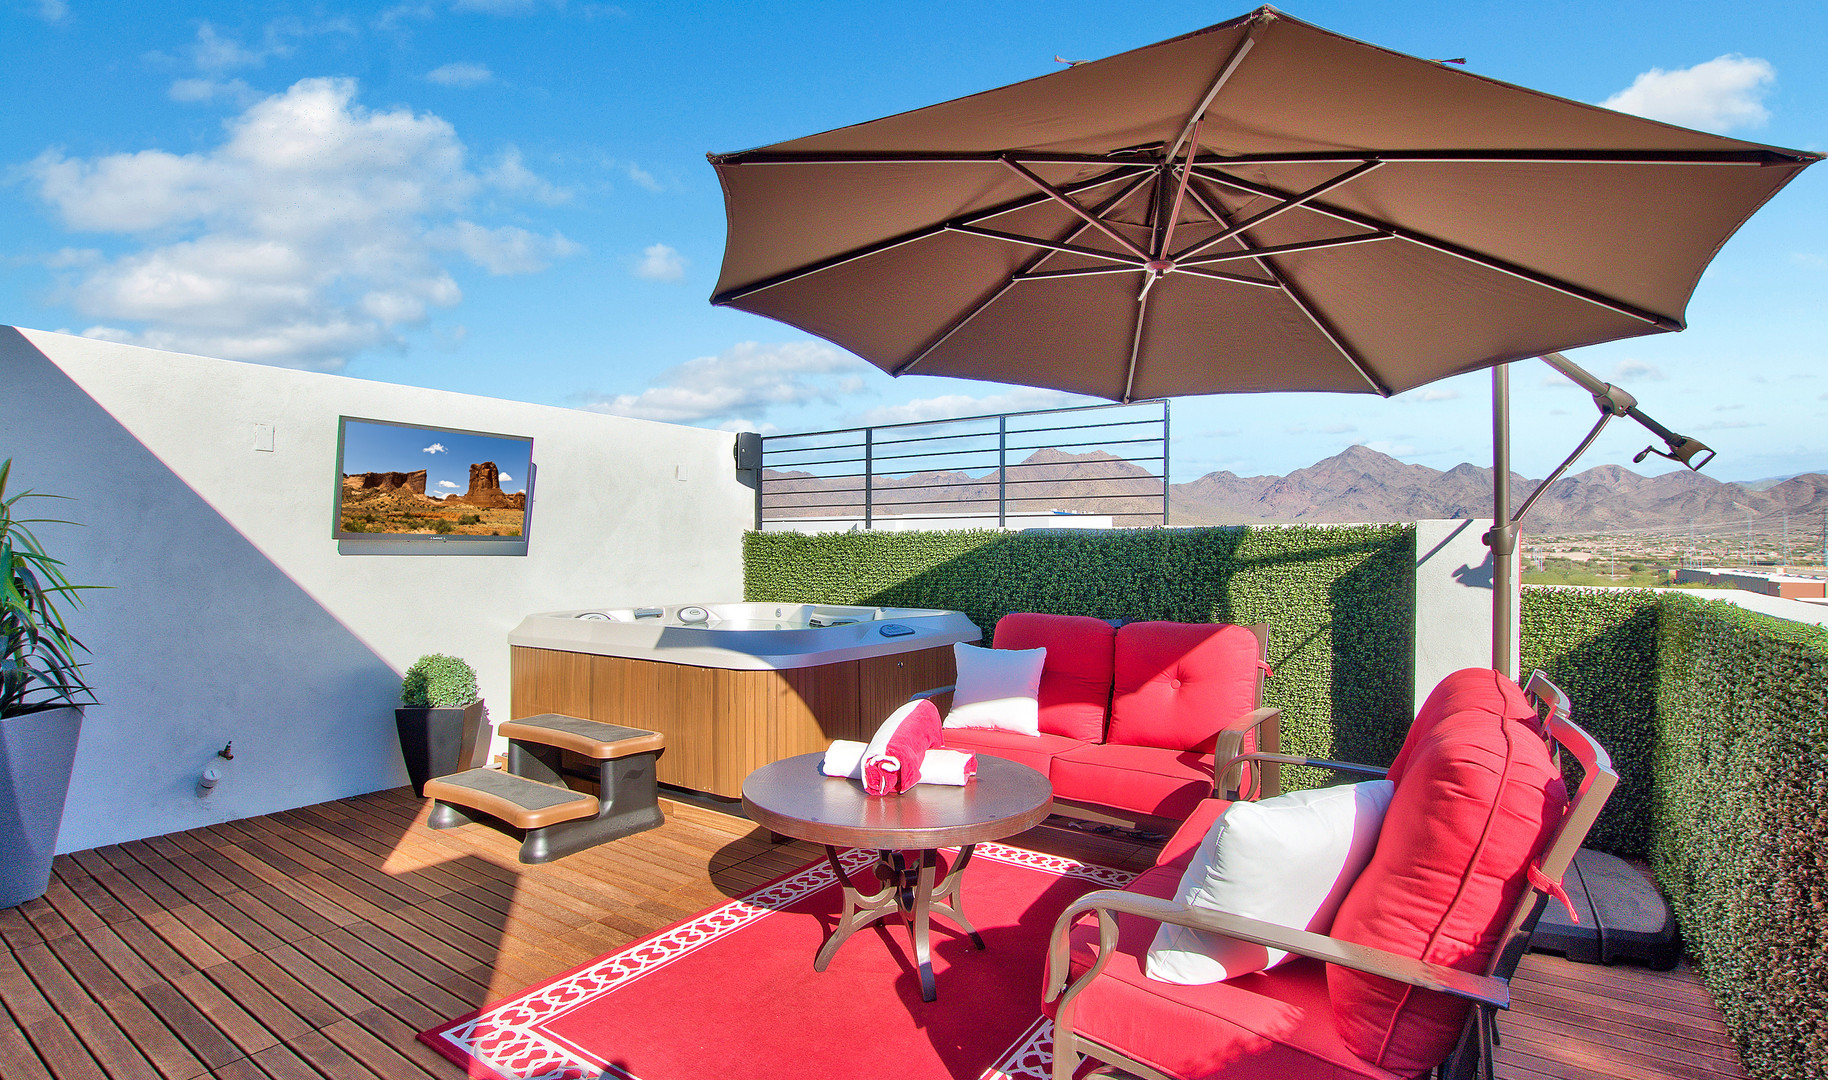 Enjoy expansive views from a private roofdeck.